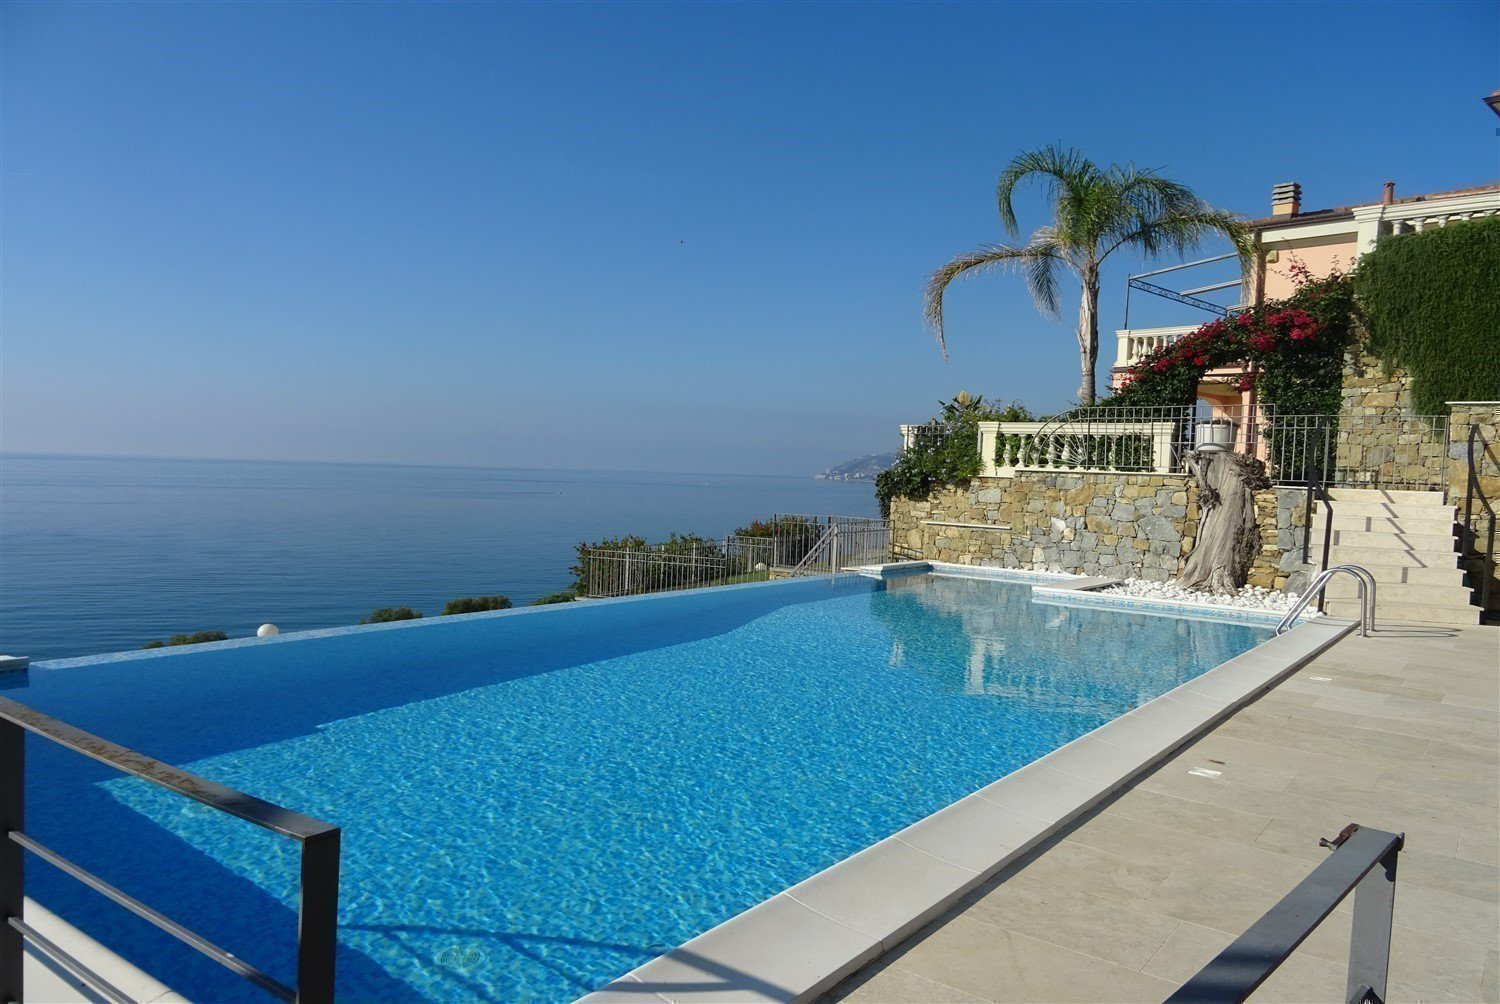 Dream apartment for sale in Sanremo sea view-swimming pool